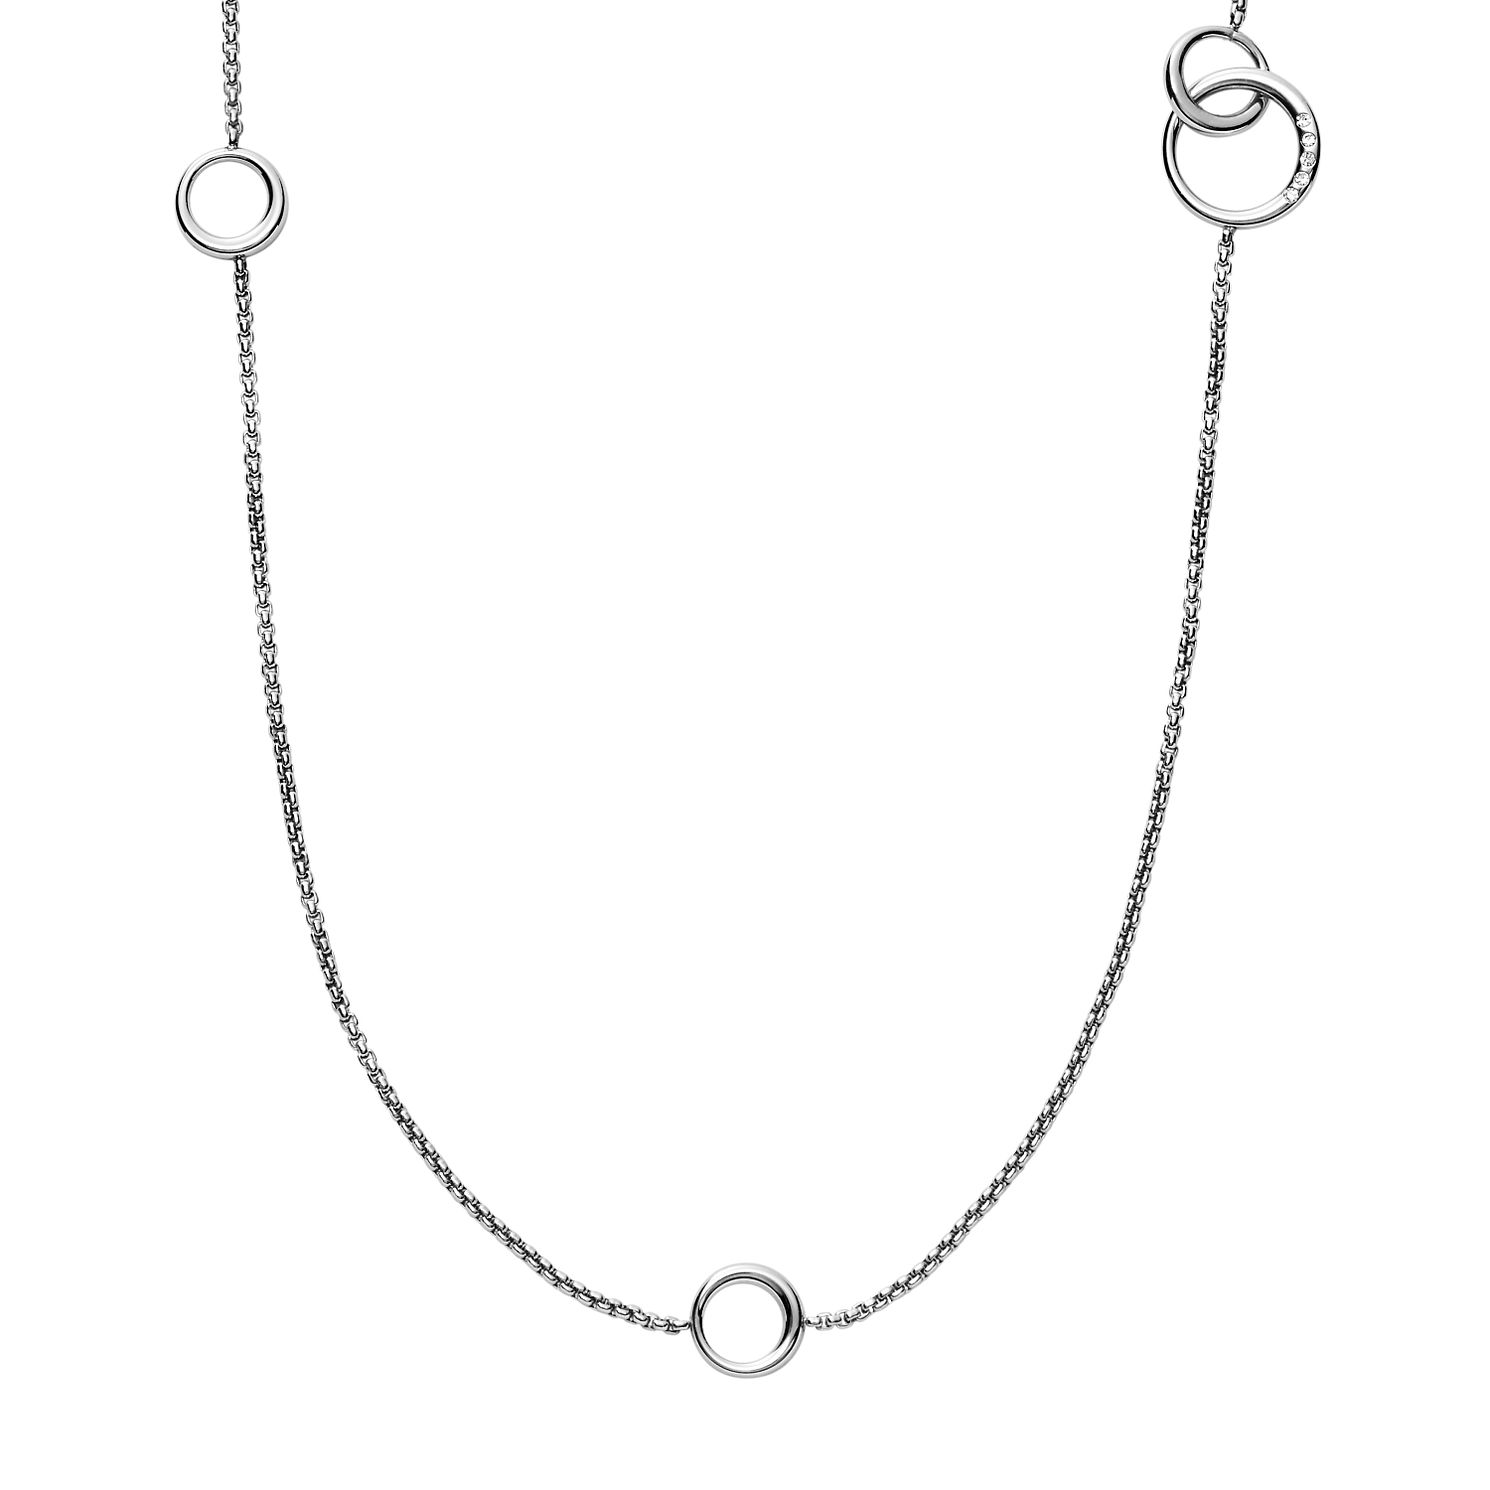 Skagen Elin Ladies' Stainless Steel Long Necklace - Product number 8601283